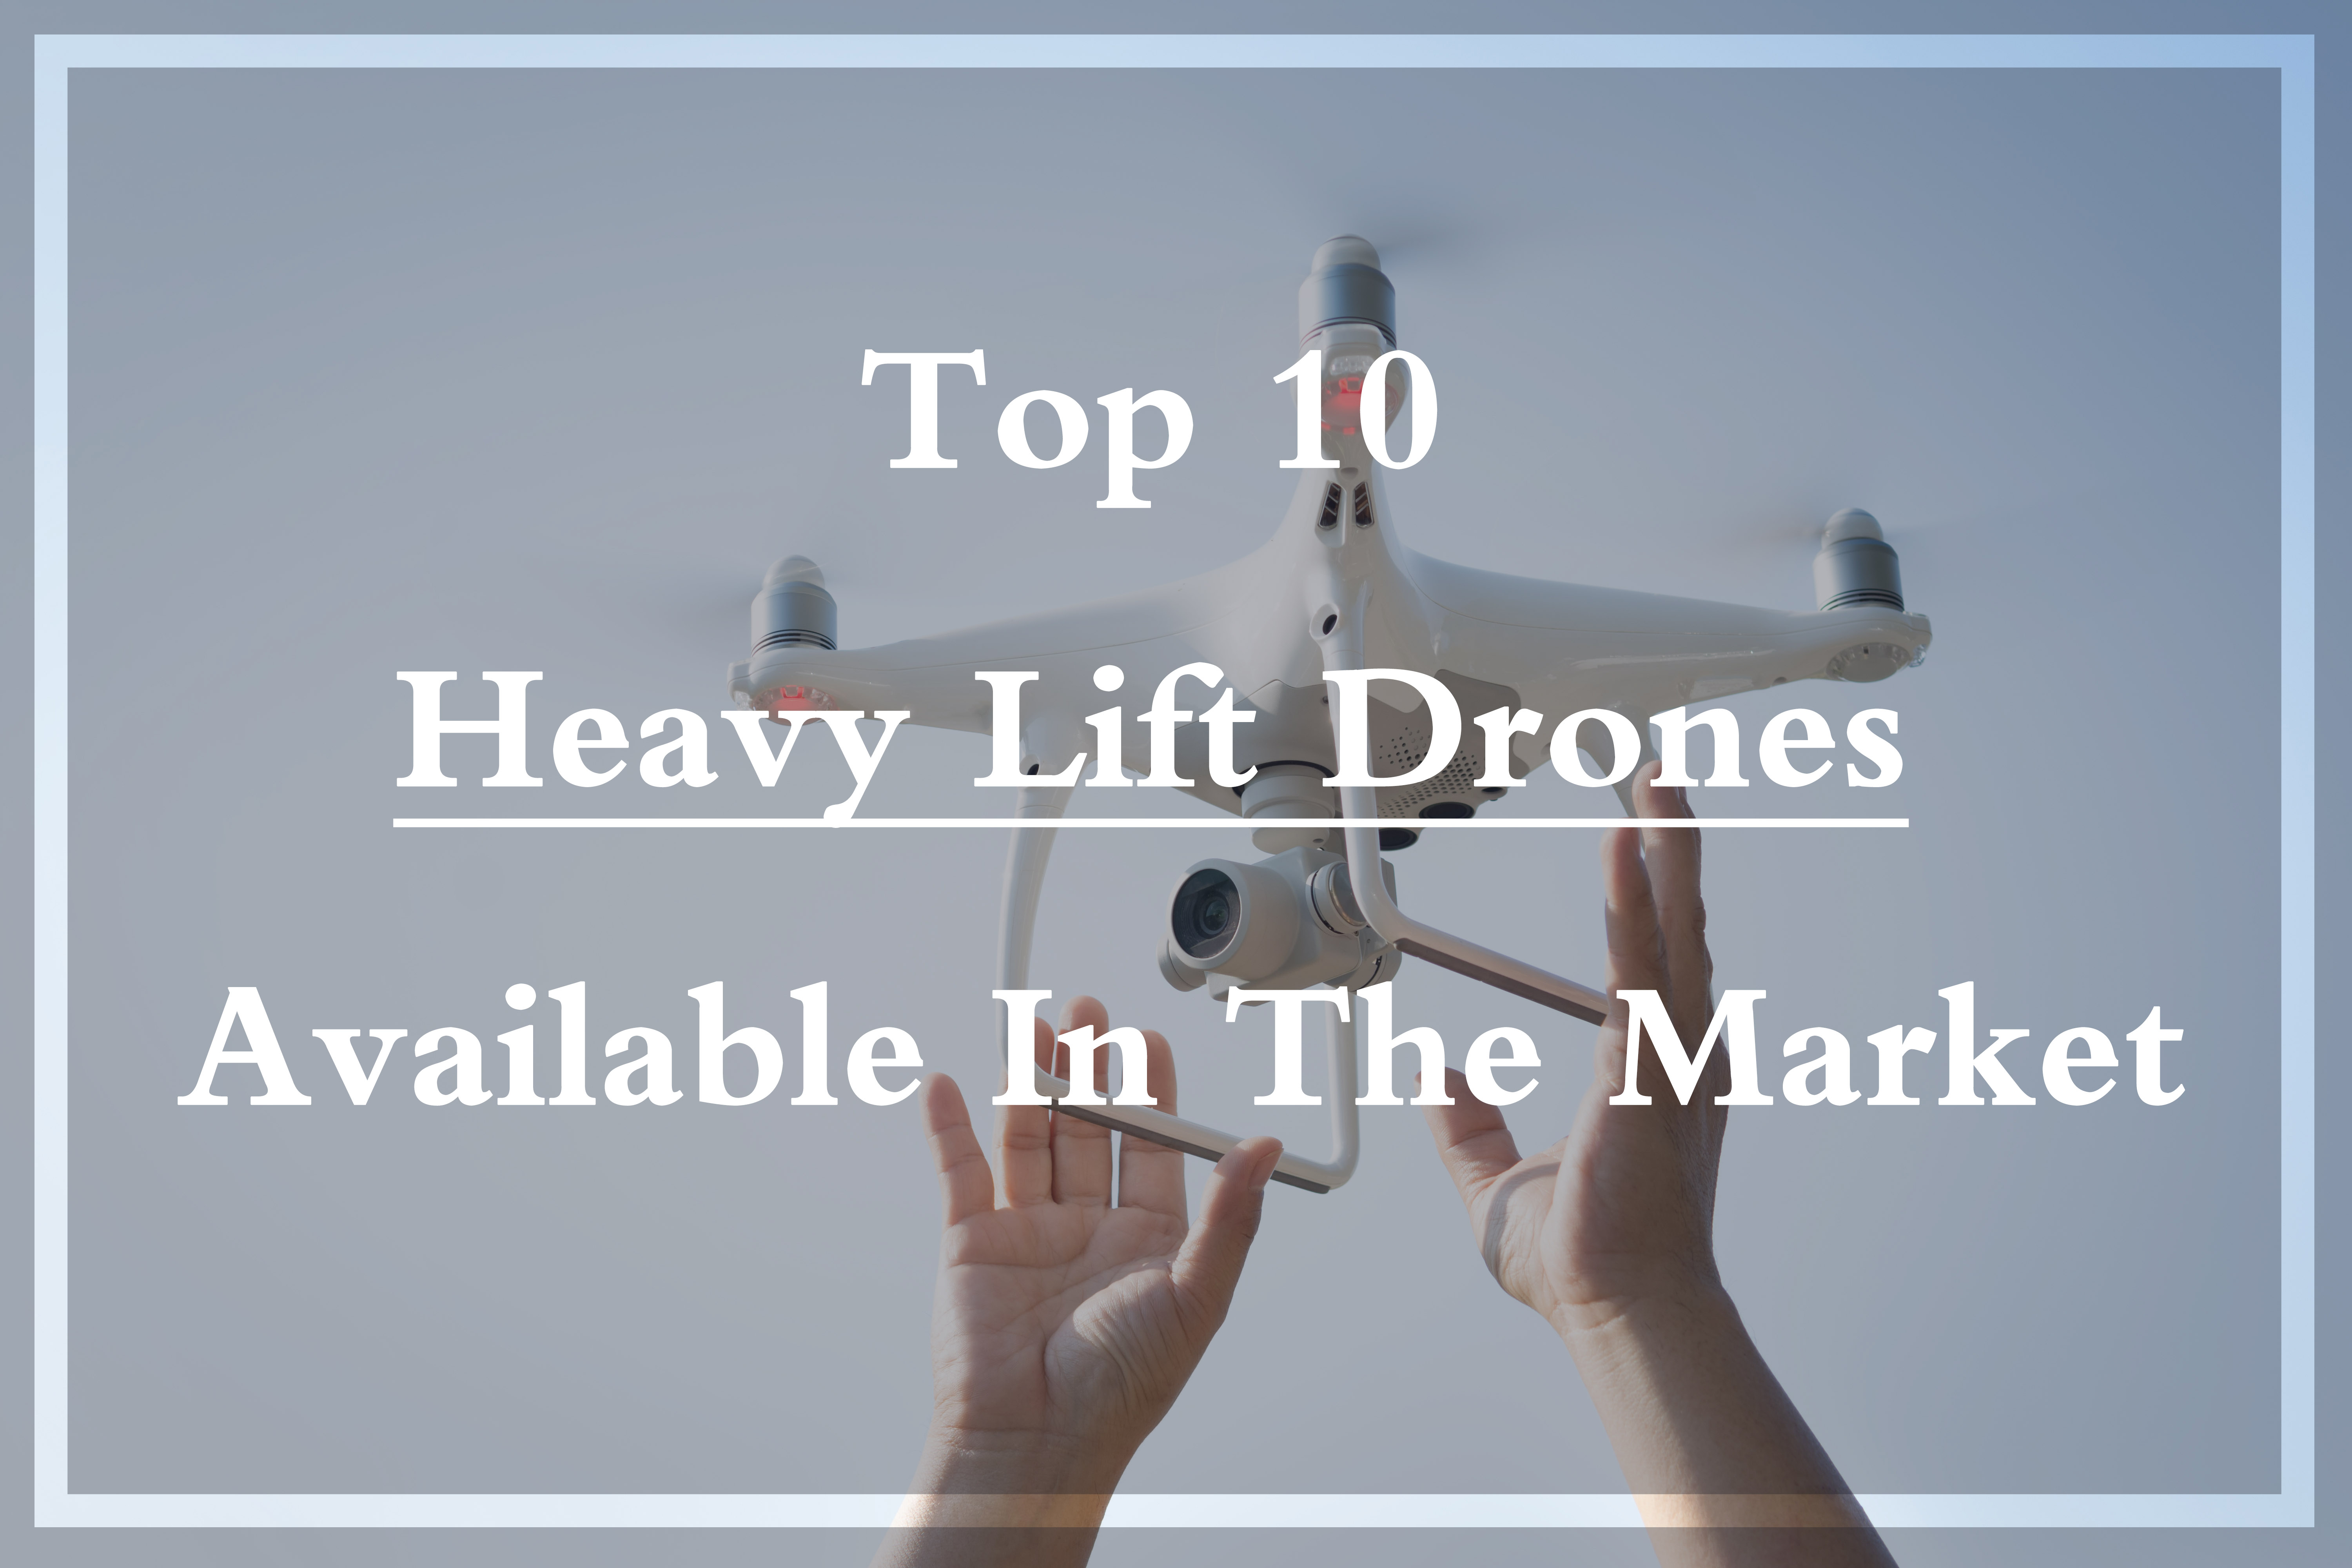 Get to know Top 10 Heavy Lift Drones Available in Market